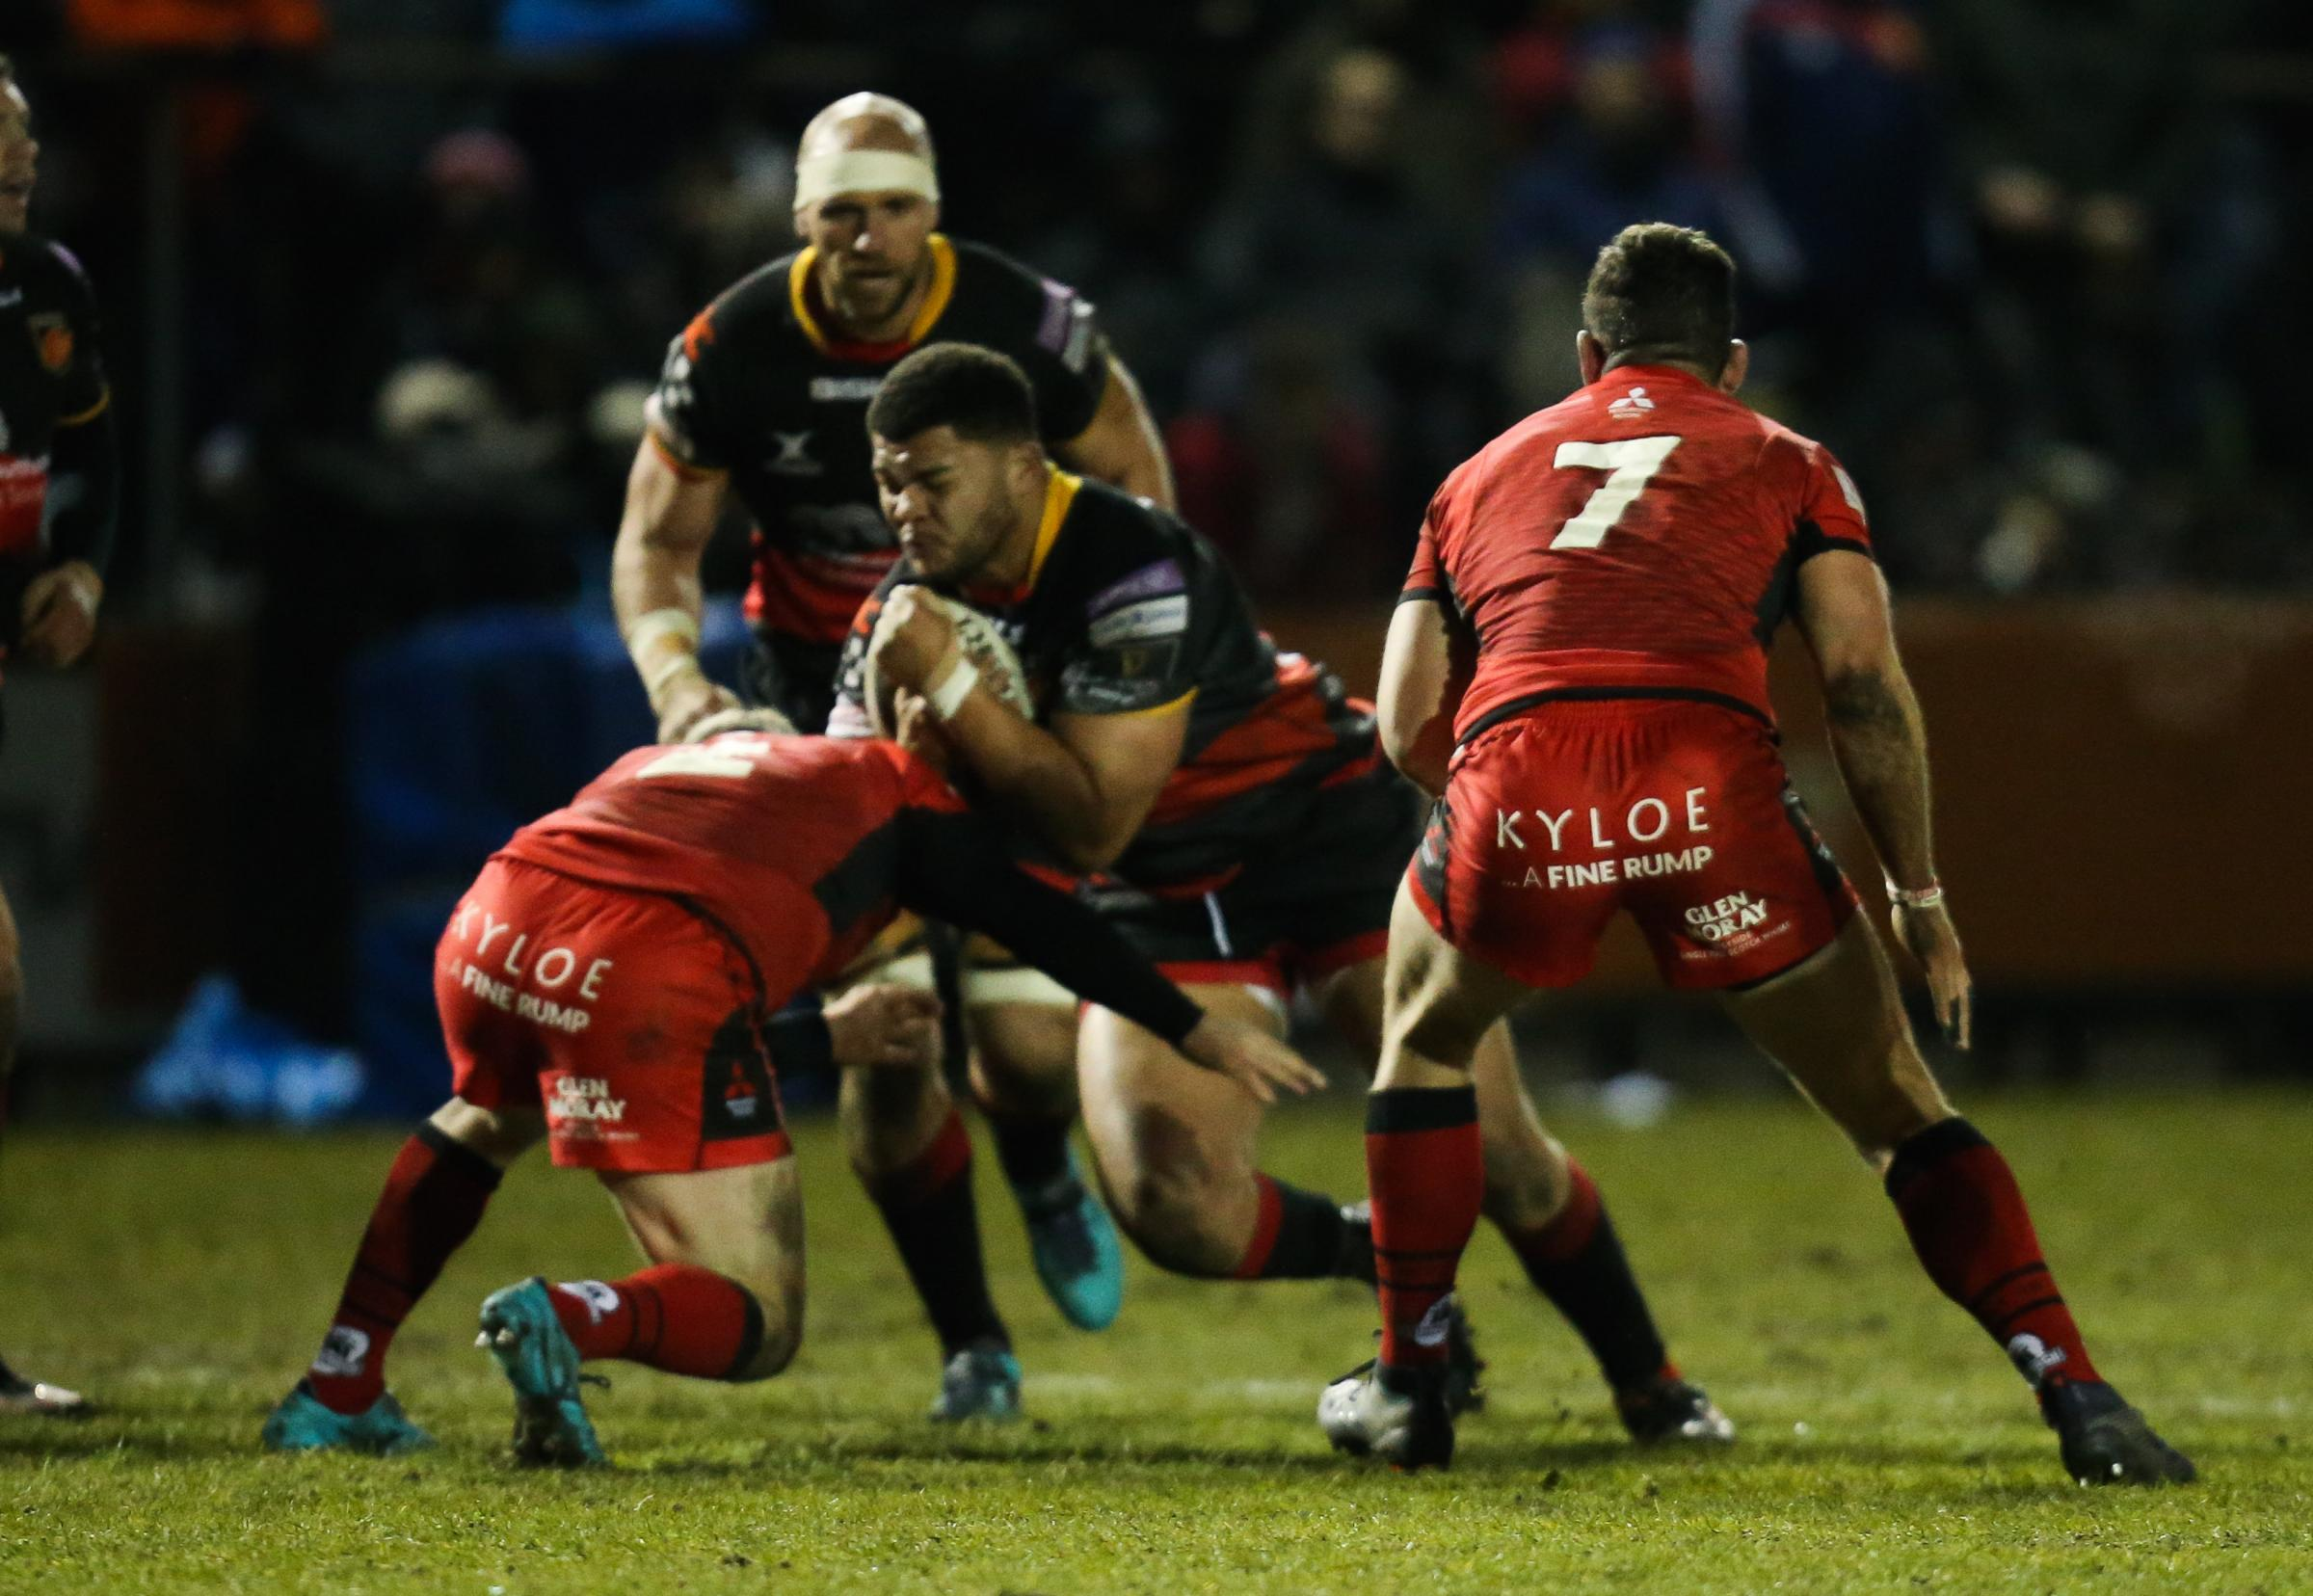 GRUNT UP FRONT: Wales prop Leon Brown believes the Dragons' pack will be a force with added depth next season